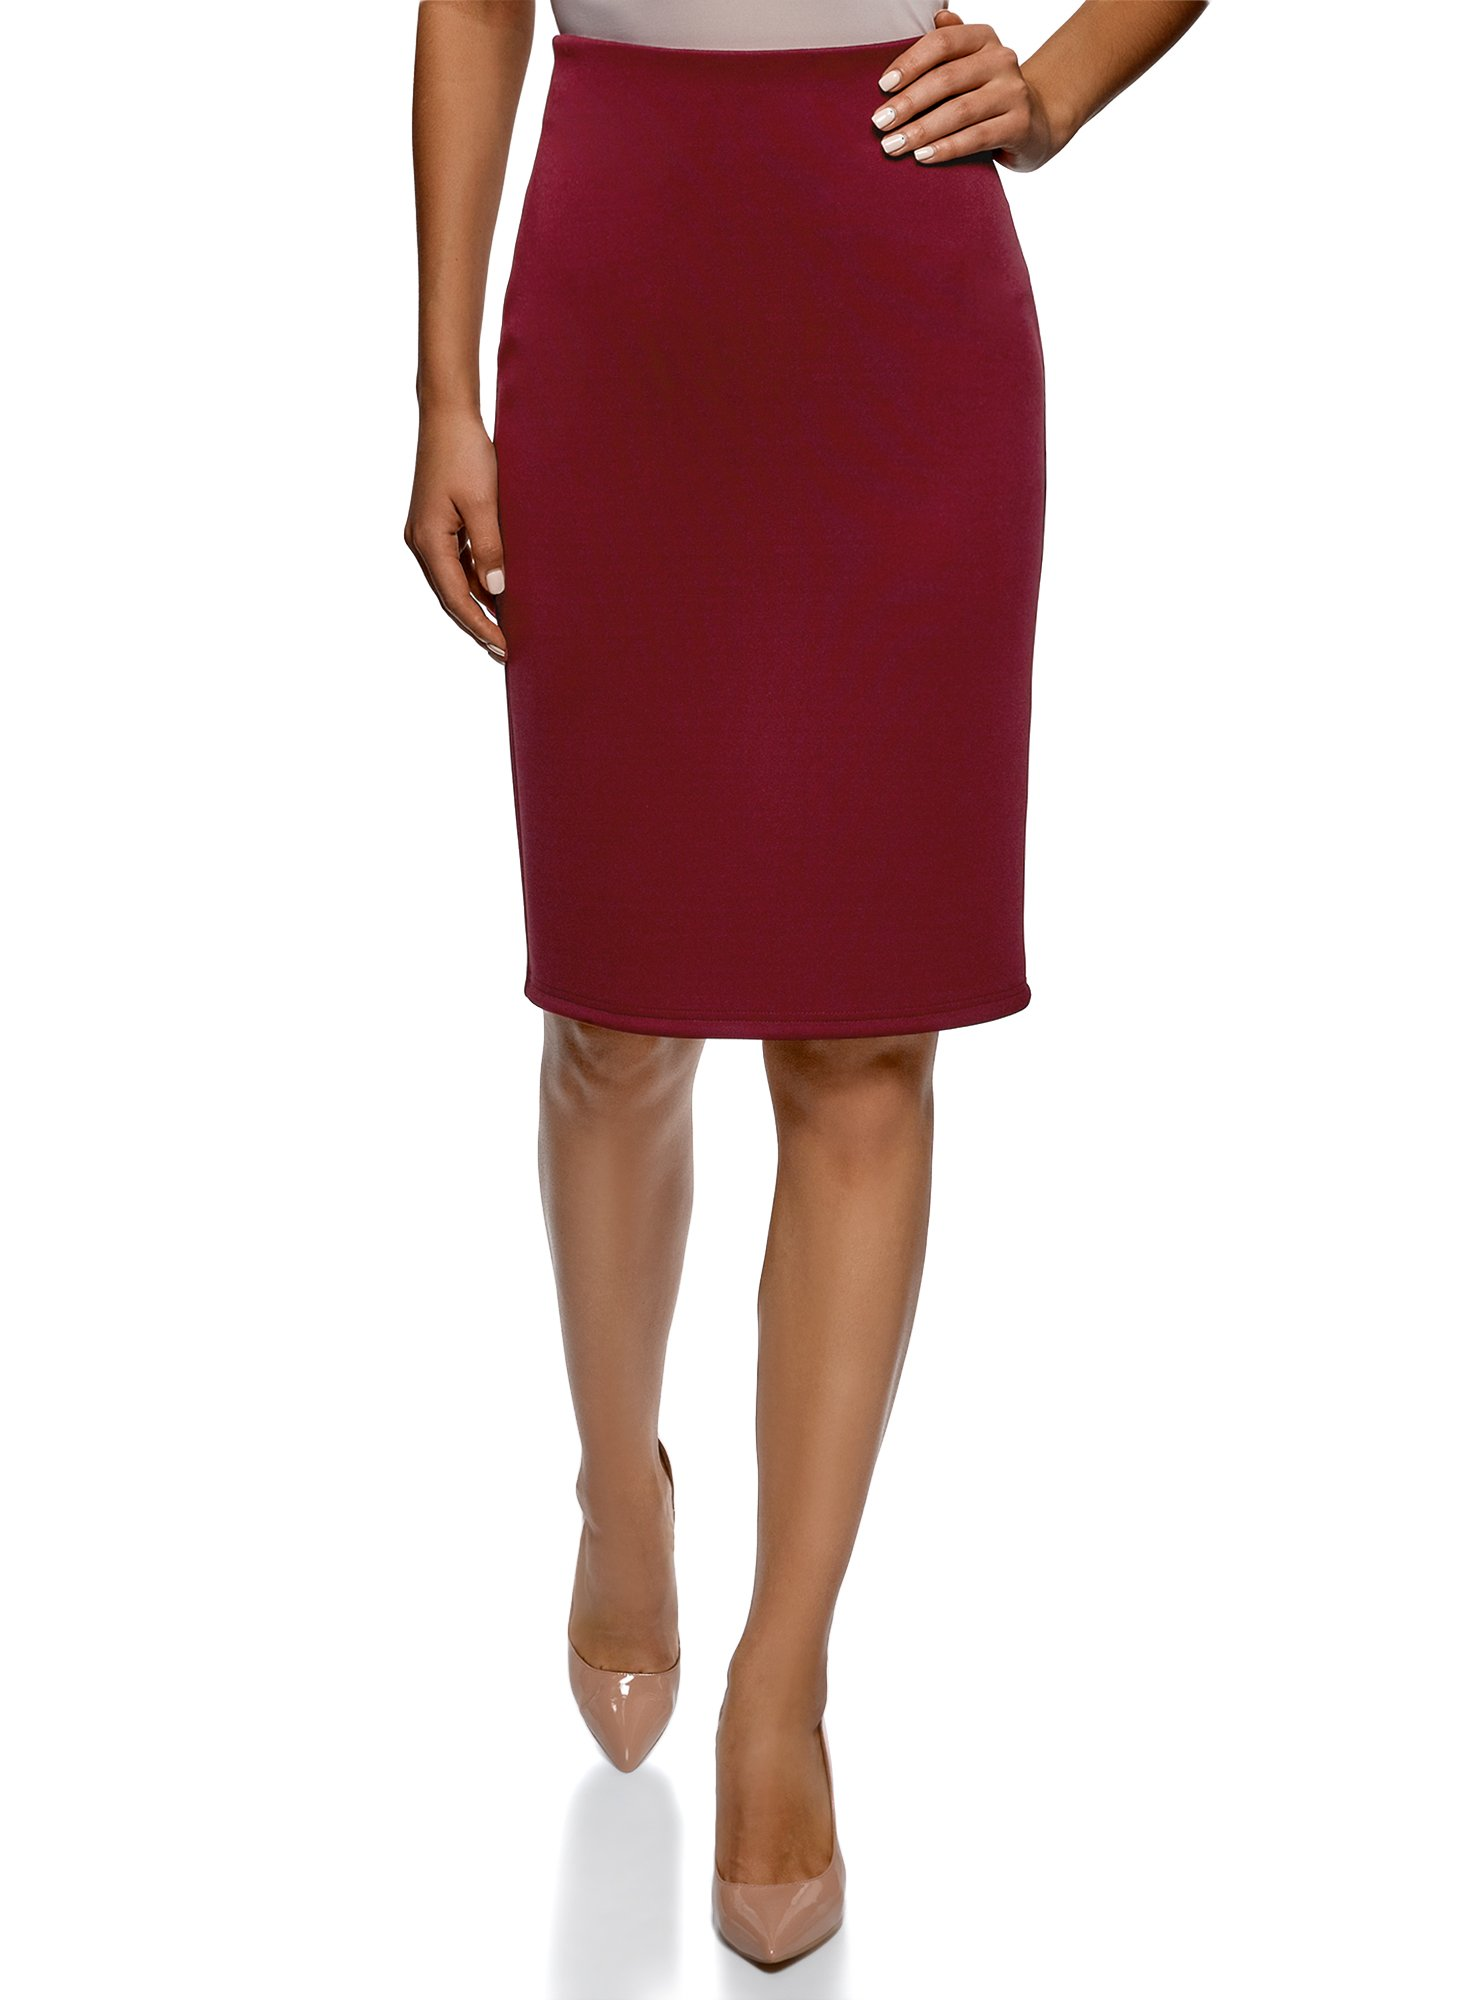 oodji Collection Women's Jersey Pencil Skirt, Red, 12 by oodji